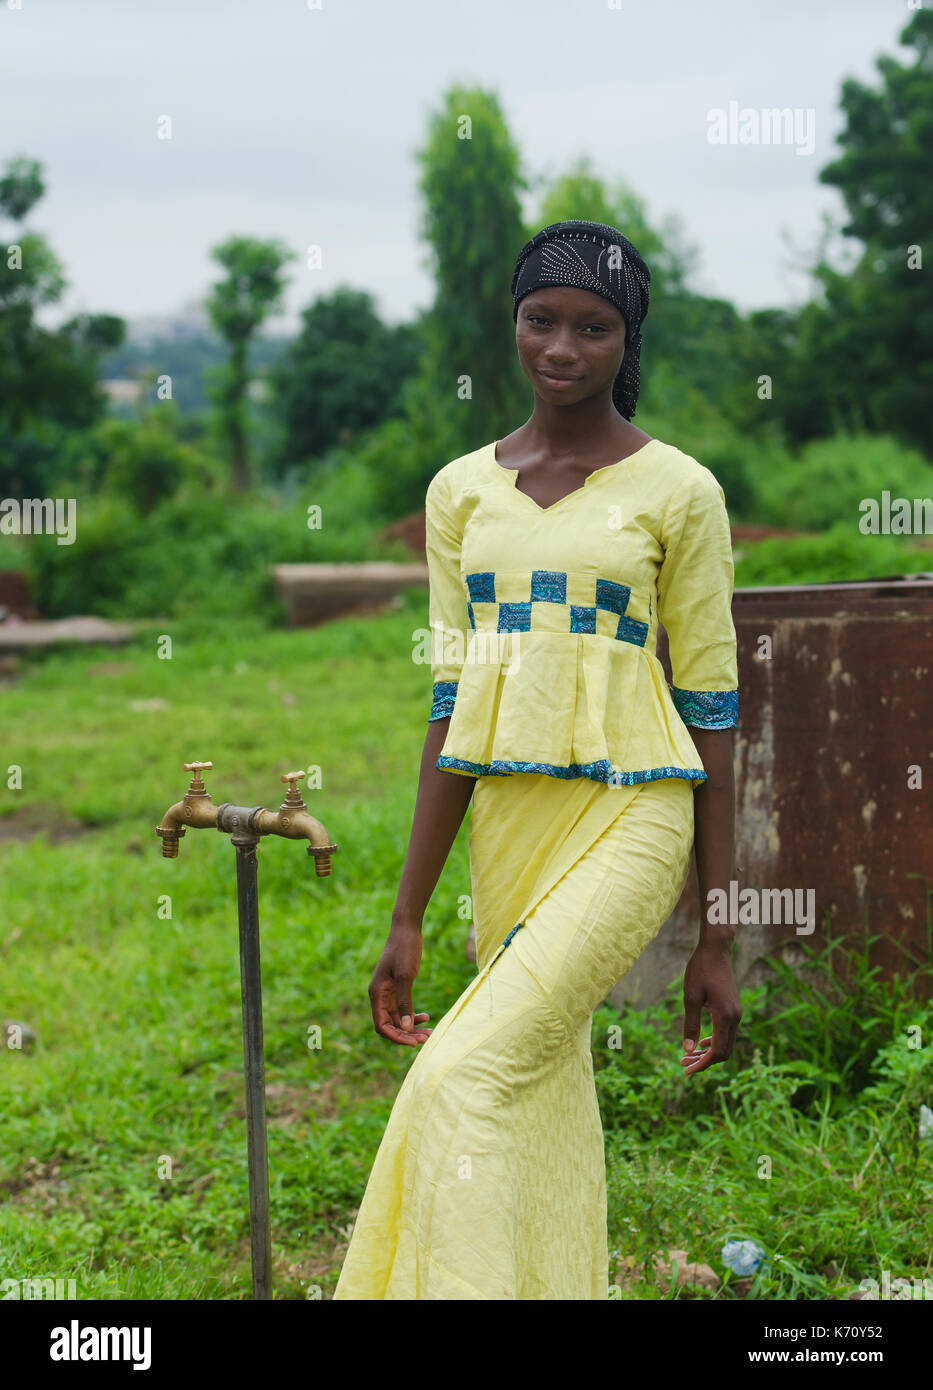 Full body shot of African black girl standing next to water tap in Africa - Stock Image